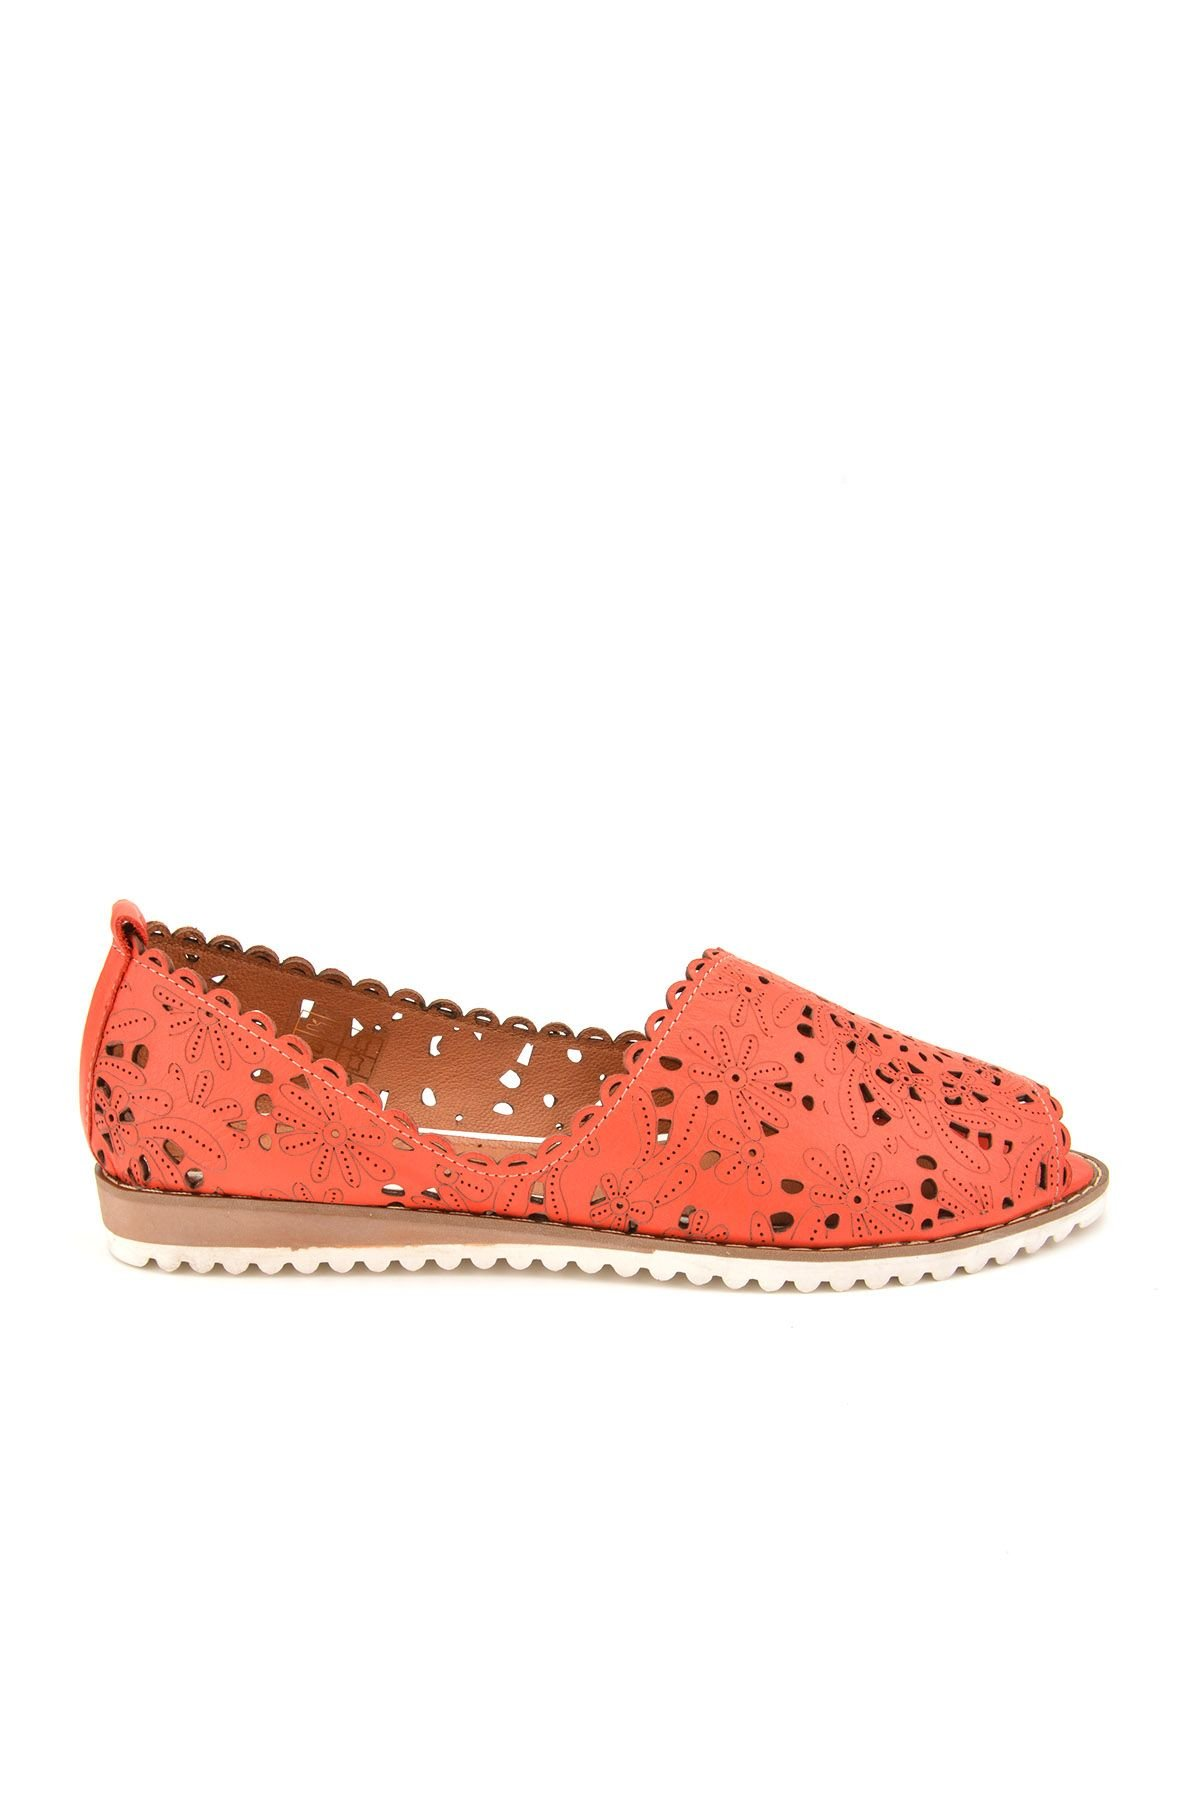 Pegia Open Fronted Women Shoes From Genuine Leather REC-135 Red